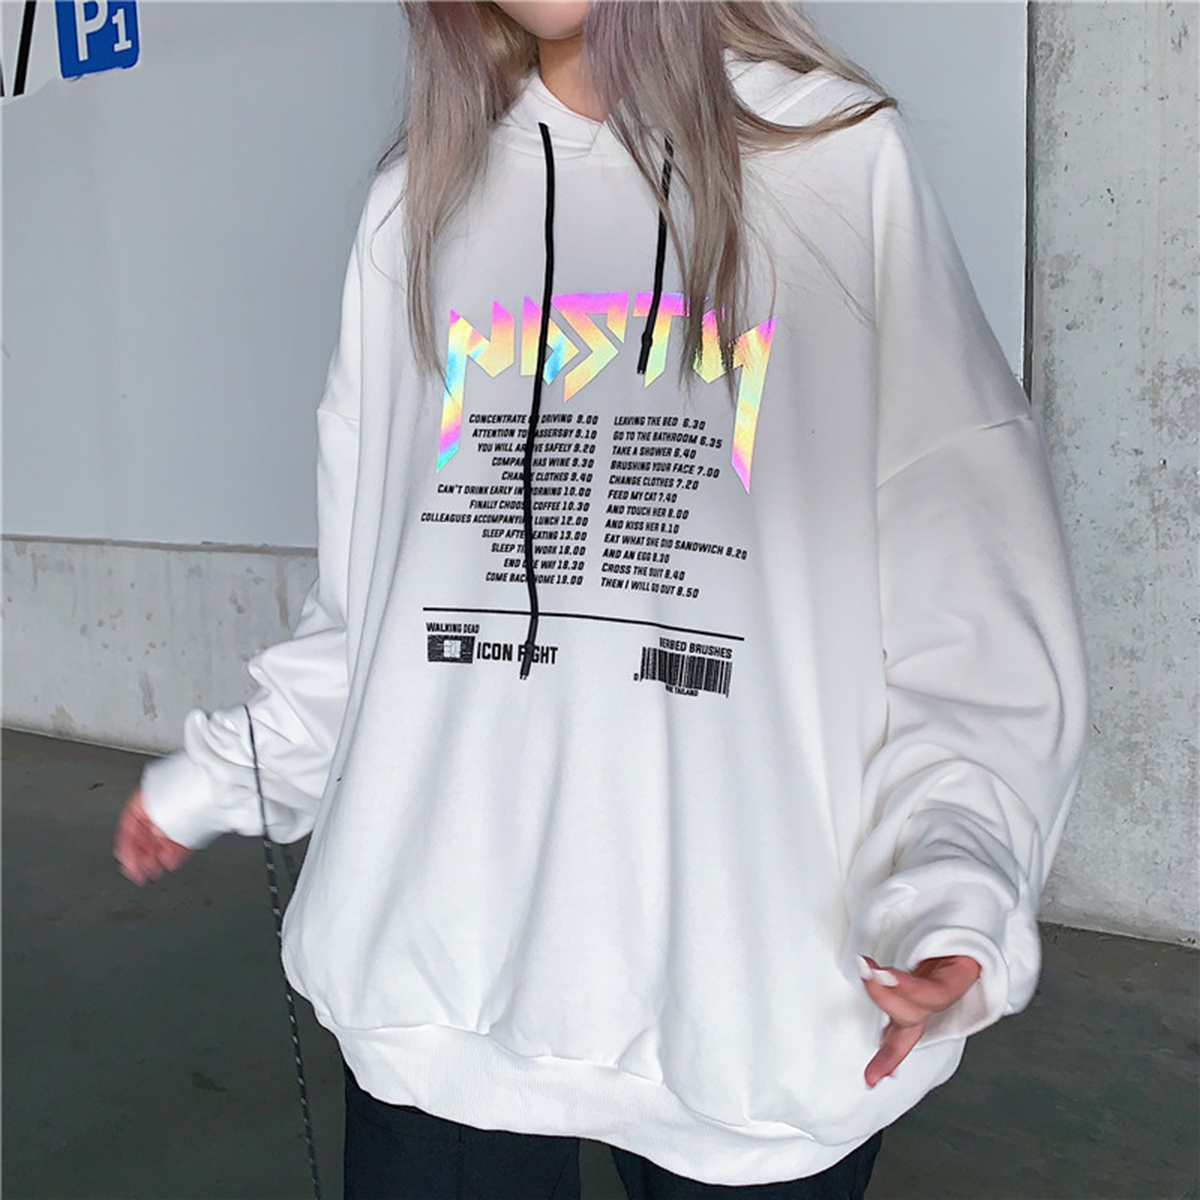 Reflective Letter Print Sweatshirt Hoodies 2020 Spring Winter Korean Casual Pullover Cotton Thick Oversized Hoodie Streetwear